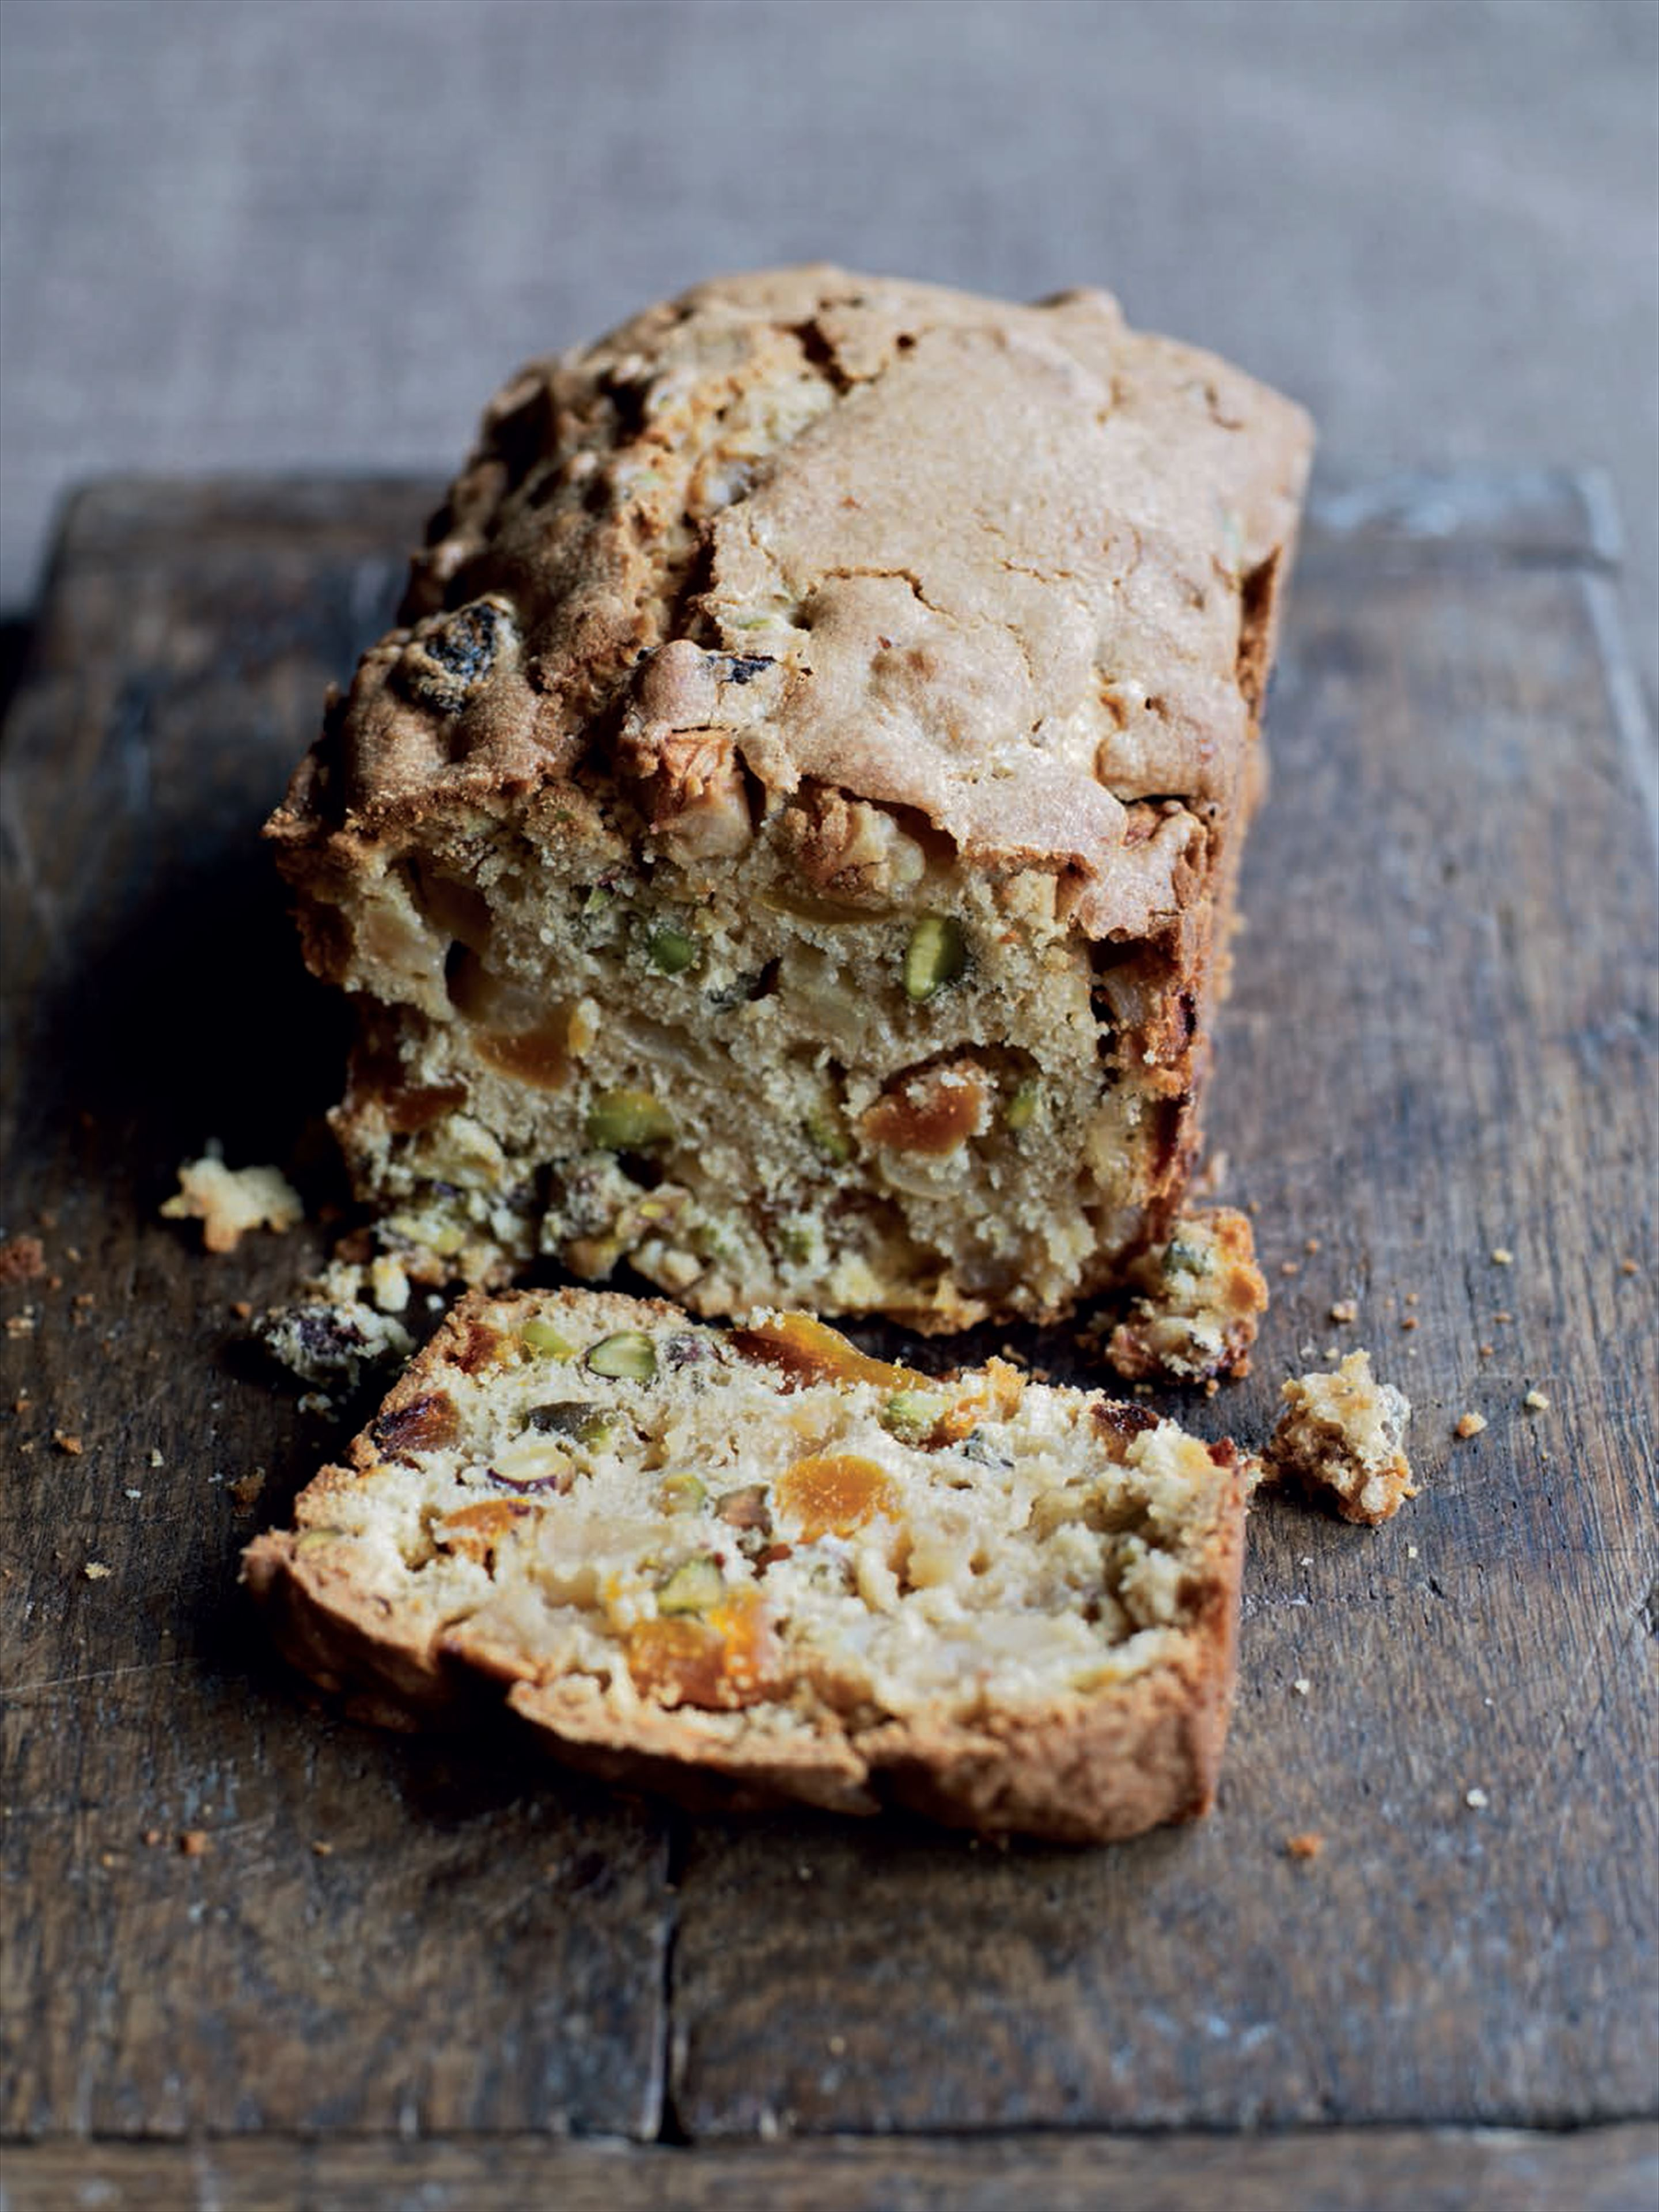 Apple, apricot and pistachio loaf